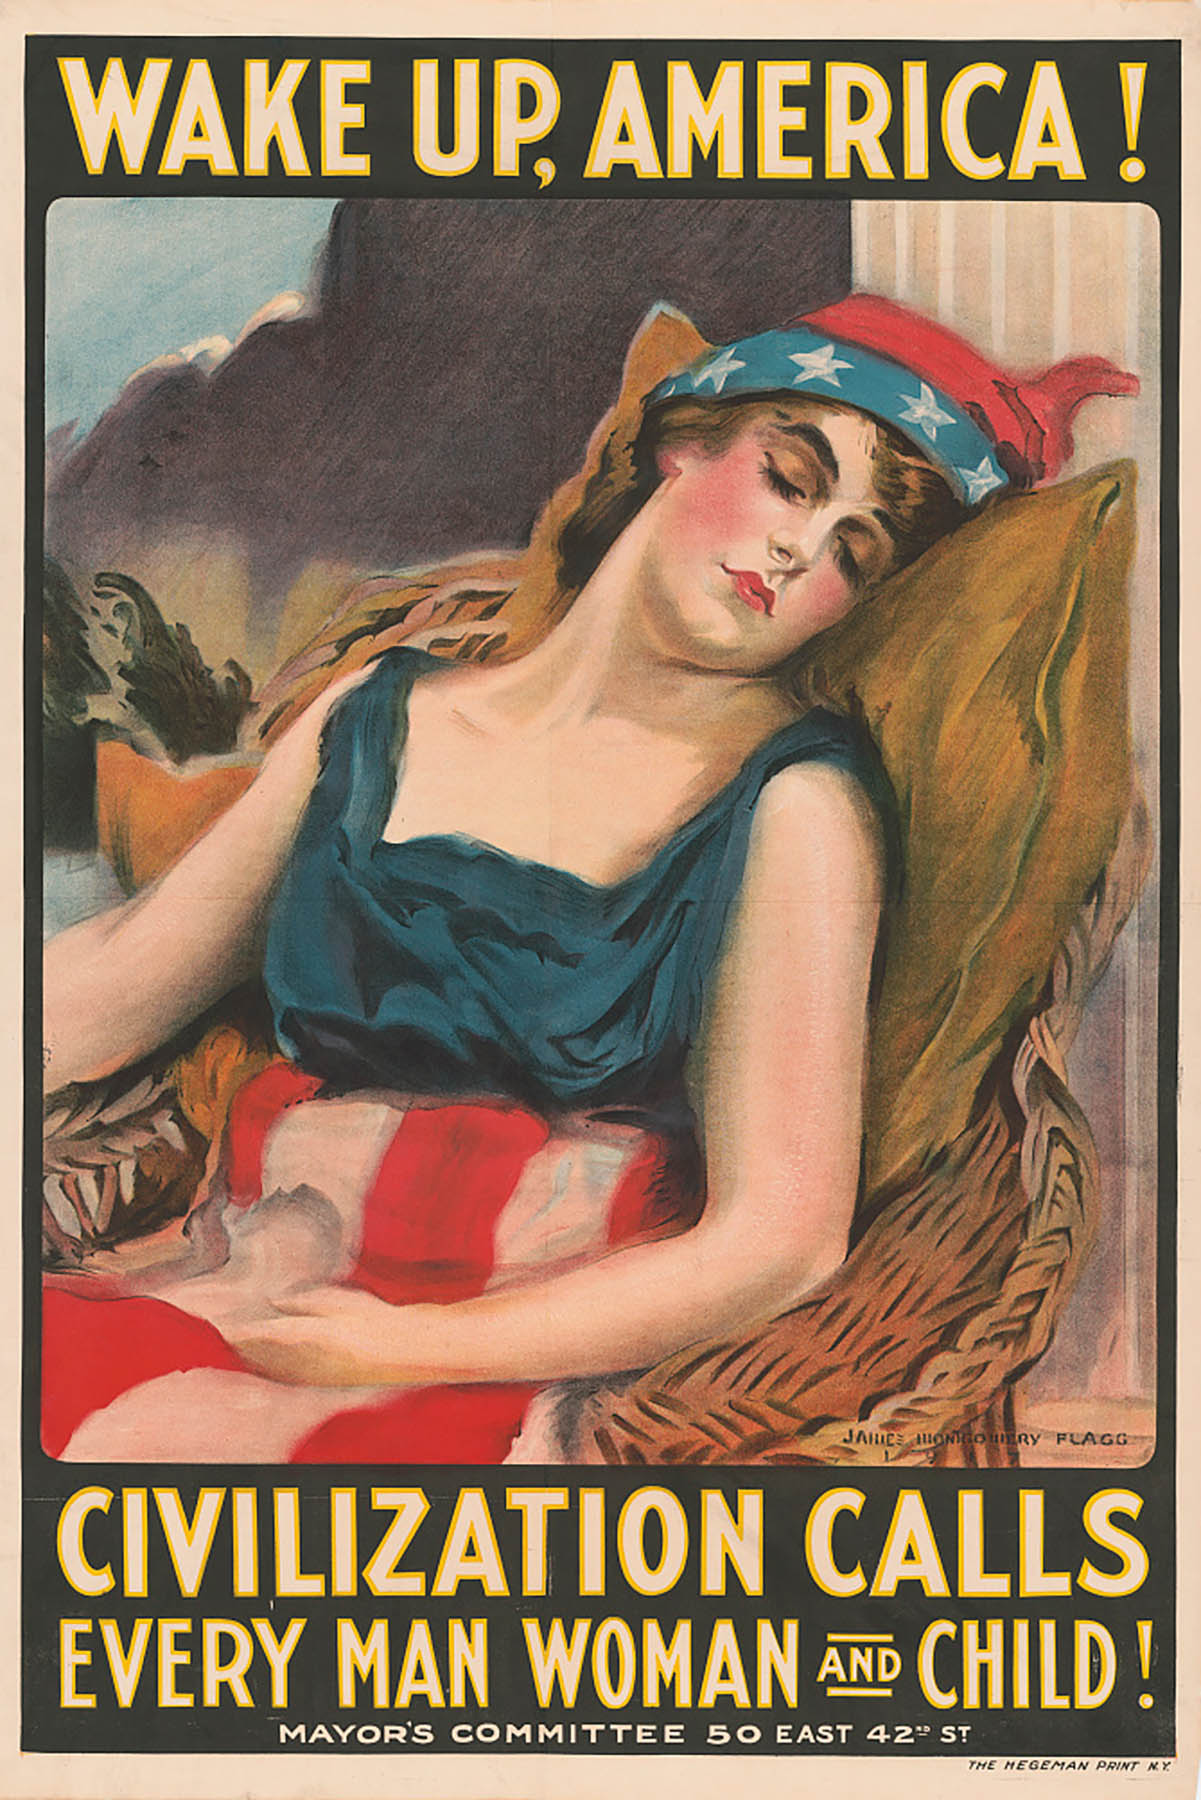 James Montgomery, Wake up America! Civilization Calls Every Man, Woman and Child!, 1917, Courtesy of Library of Congress, Flagg.